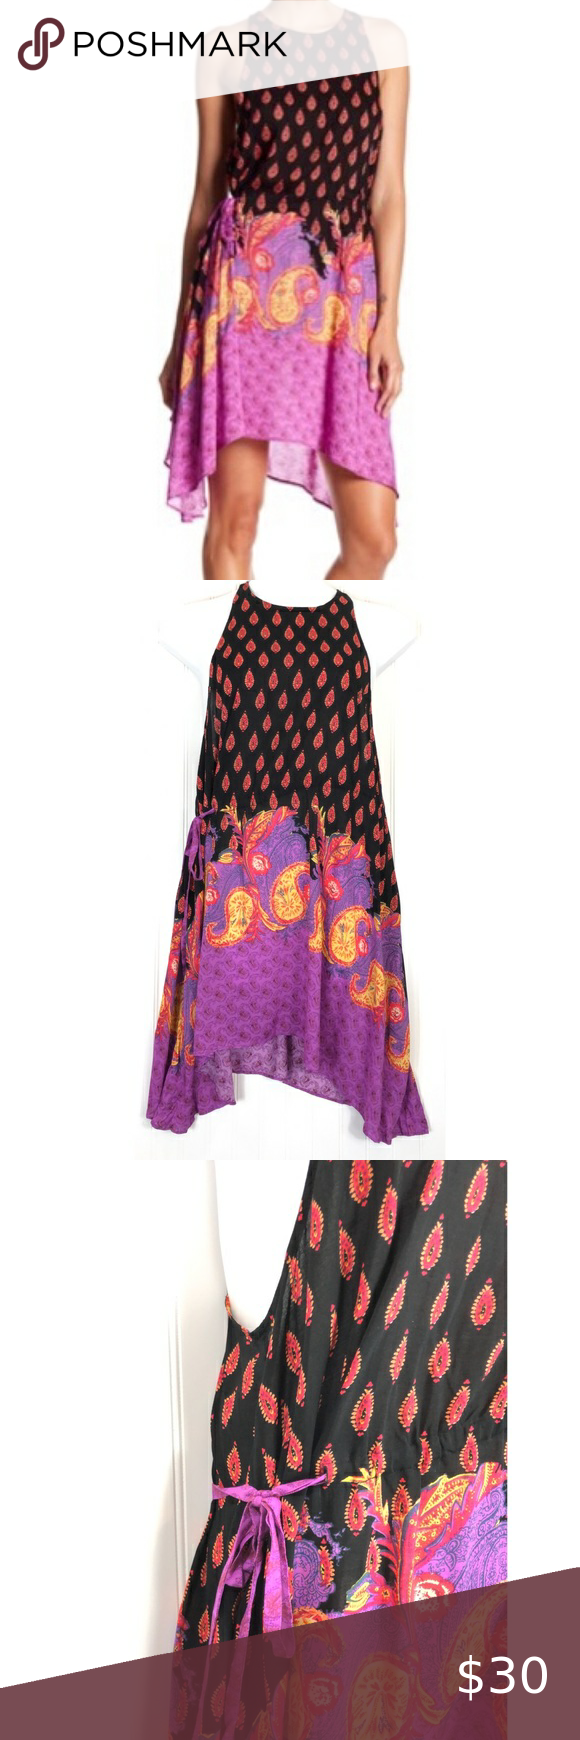 Intimately Free People Rendezvous Tank Dress A0214 Intimately Free People purple back Rendezvous Tank Dress A0214 crew neck, sleeveless, back keyhole with button closure, drawstring waist, asymmetrical Women's Size:  M Approx measurement (measured flat): armpit to armpit - 20 1/2 inches; length - 34 inches Fabric content: 100% rayon Machine washable new with tags - see pictures Free People Dresses